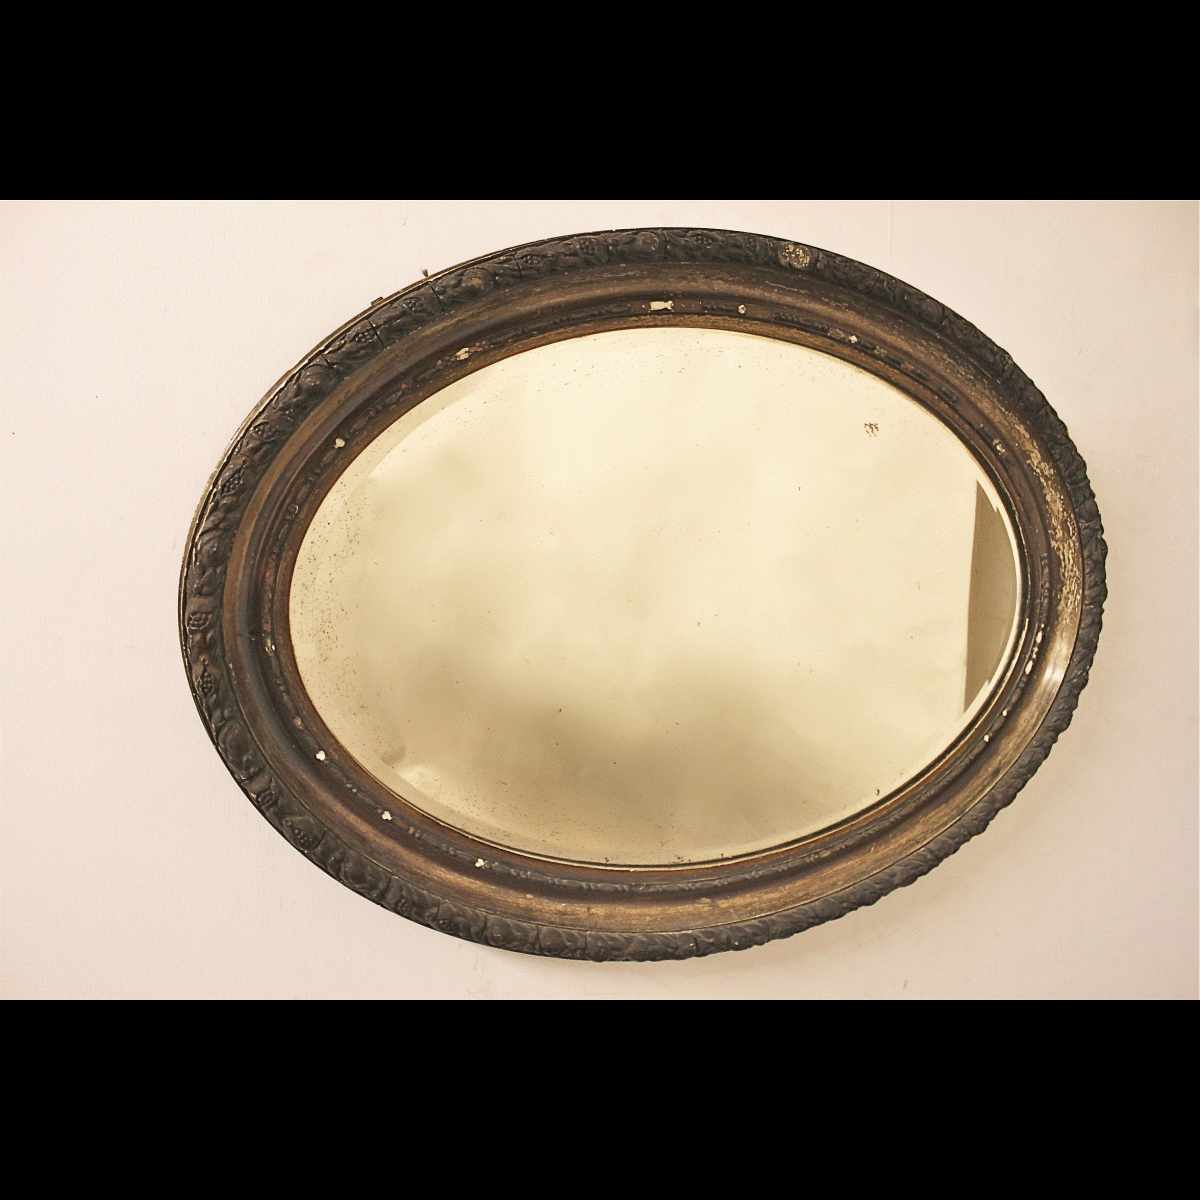 0070024 mirror x1 90cm wide by 65cm long stockyard north for Long wide mirror